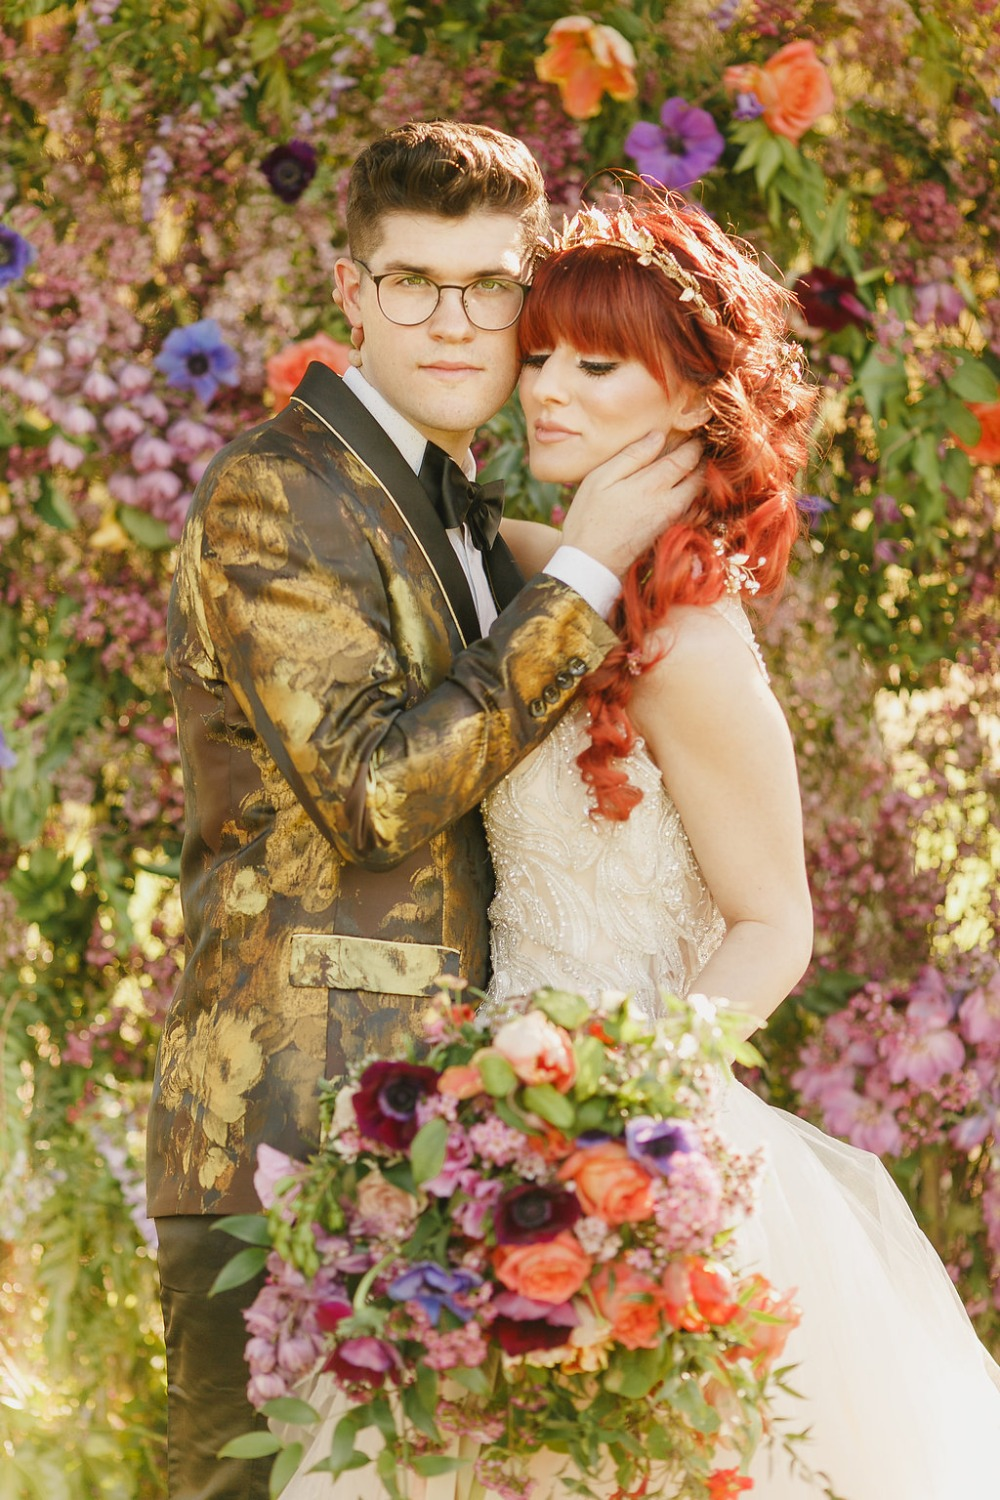 Floral Fairytale Shoot at Heavenly Oaks Flower Farm